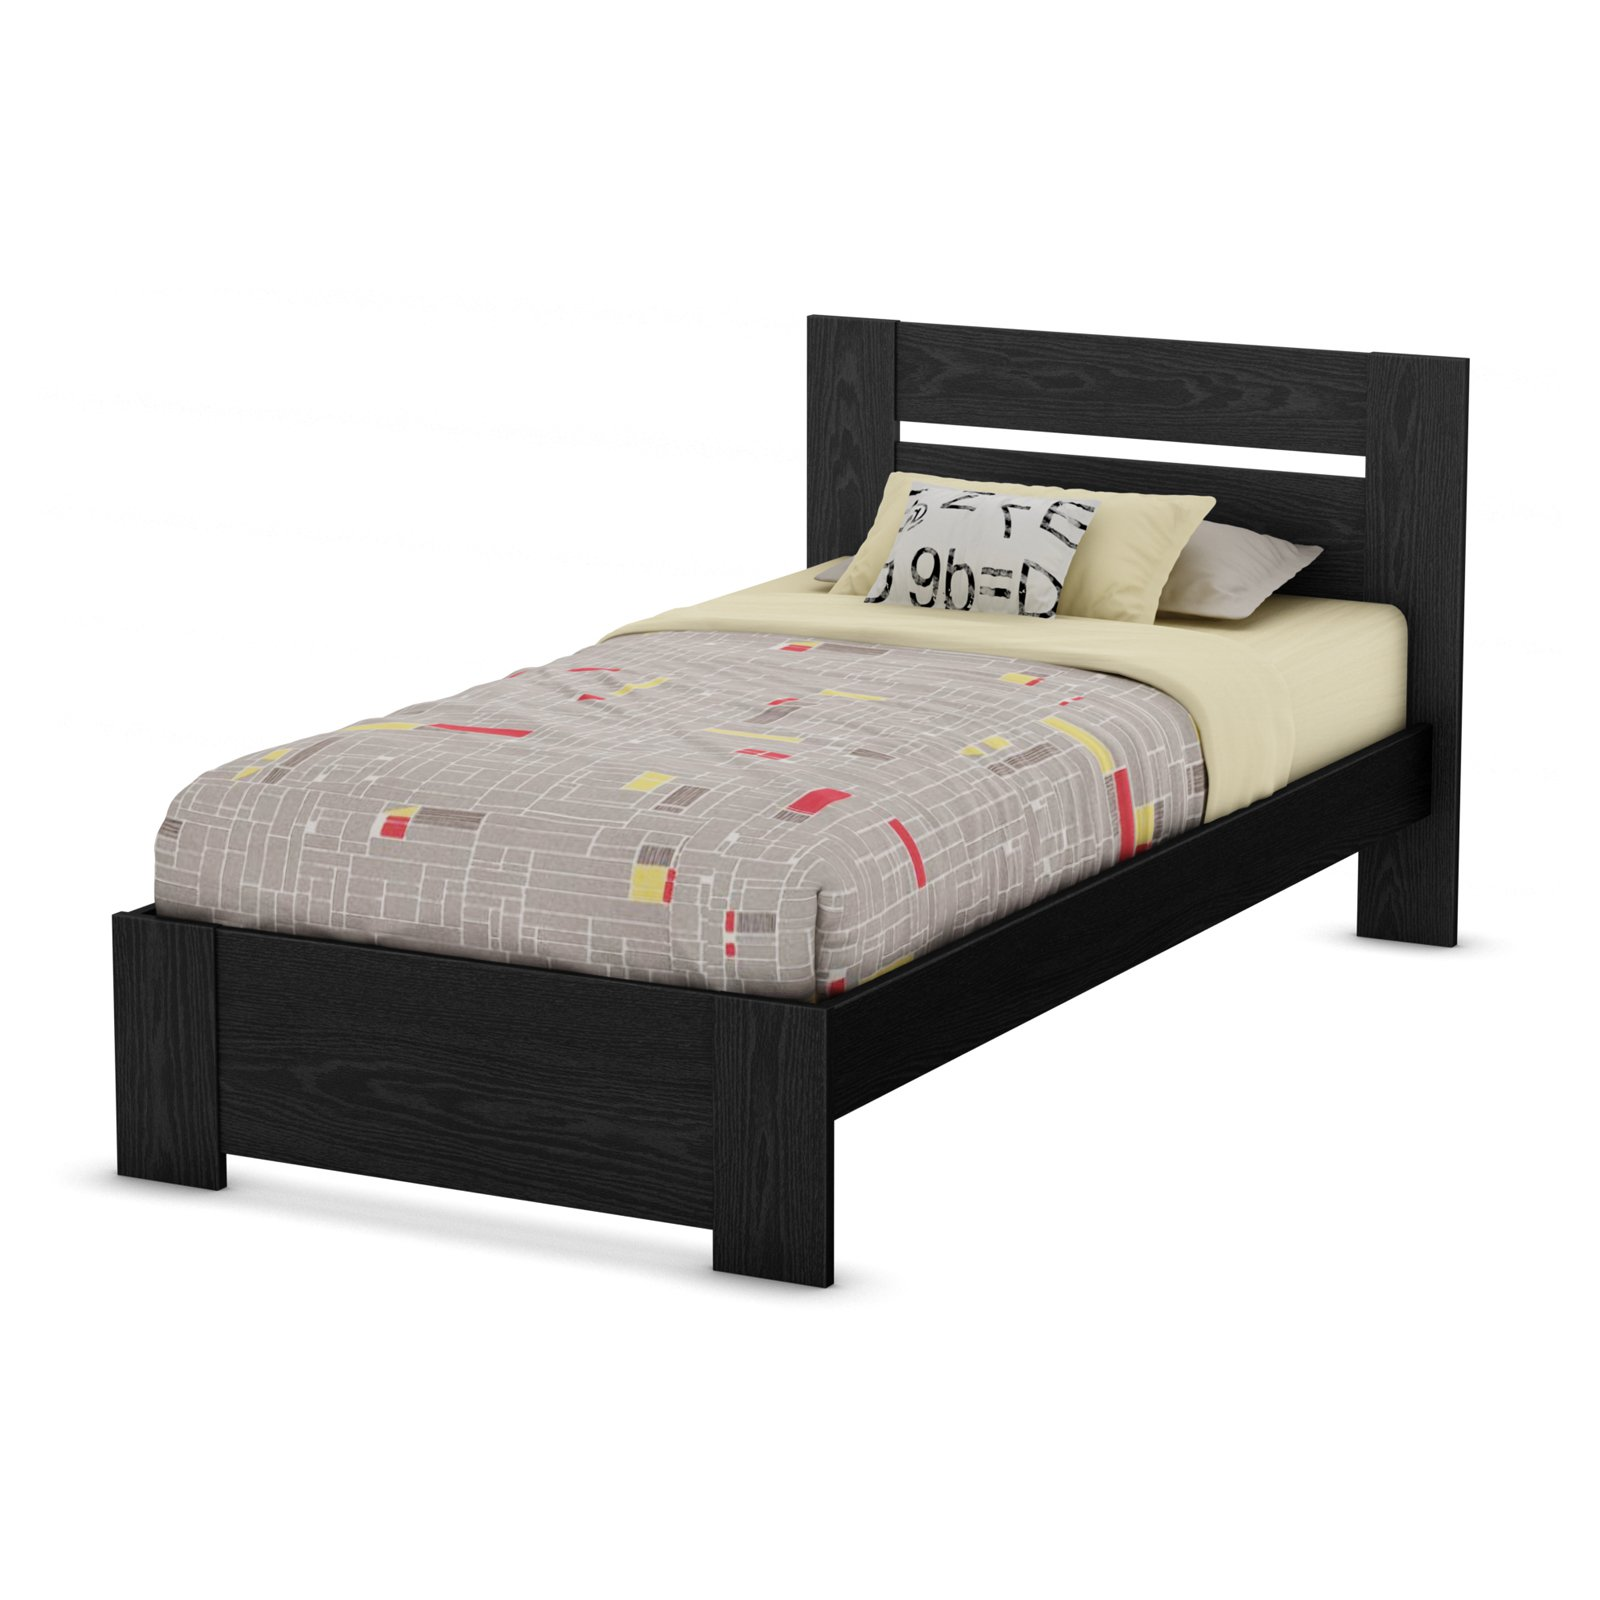 South Shore Flexible Twin Platform Bed, Black Oak Beds